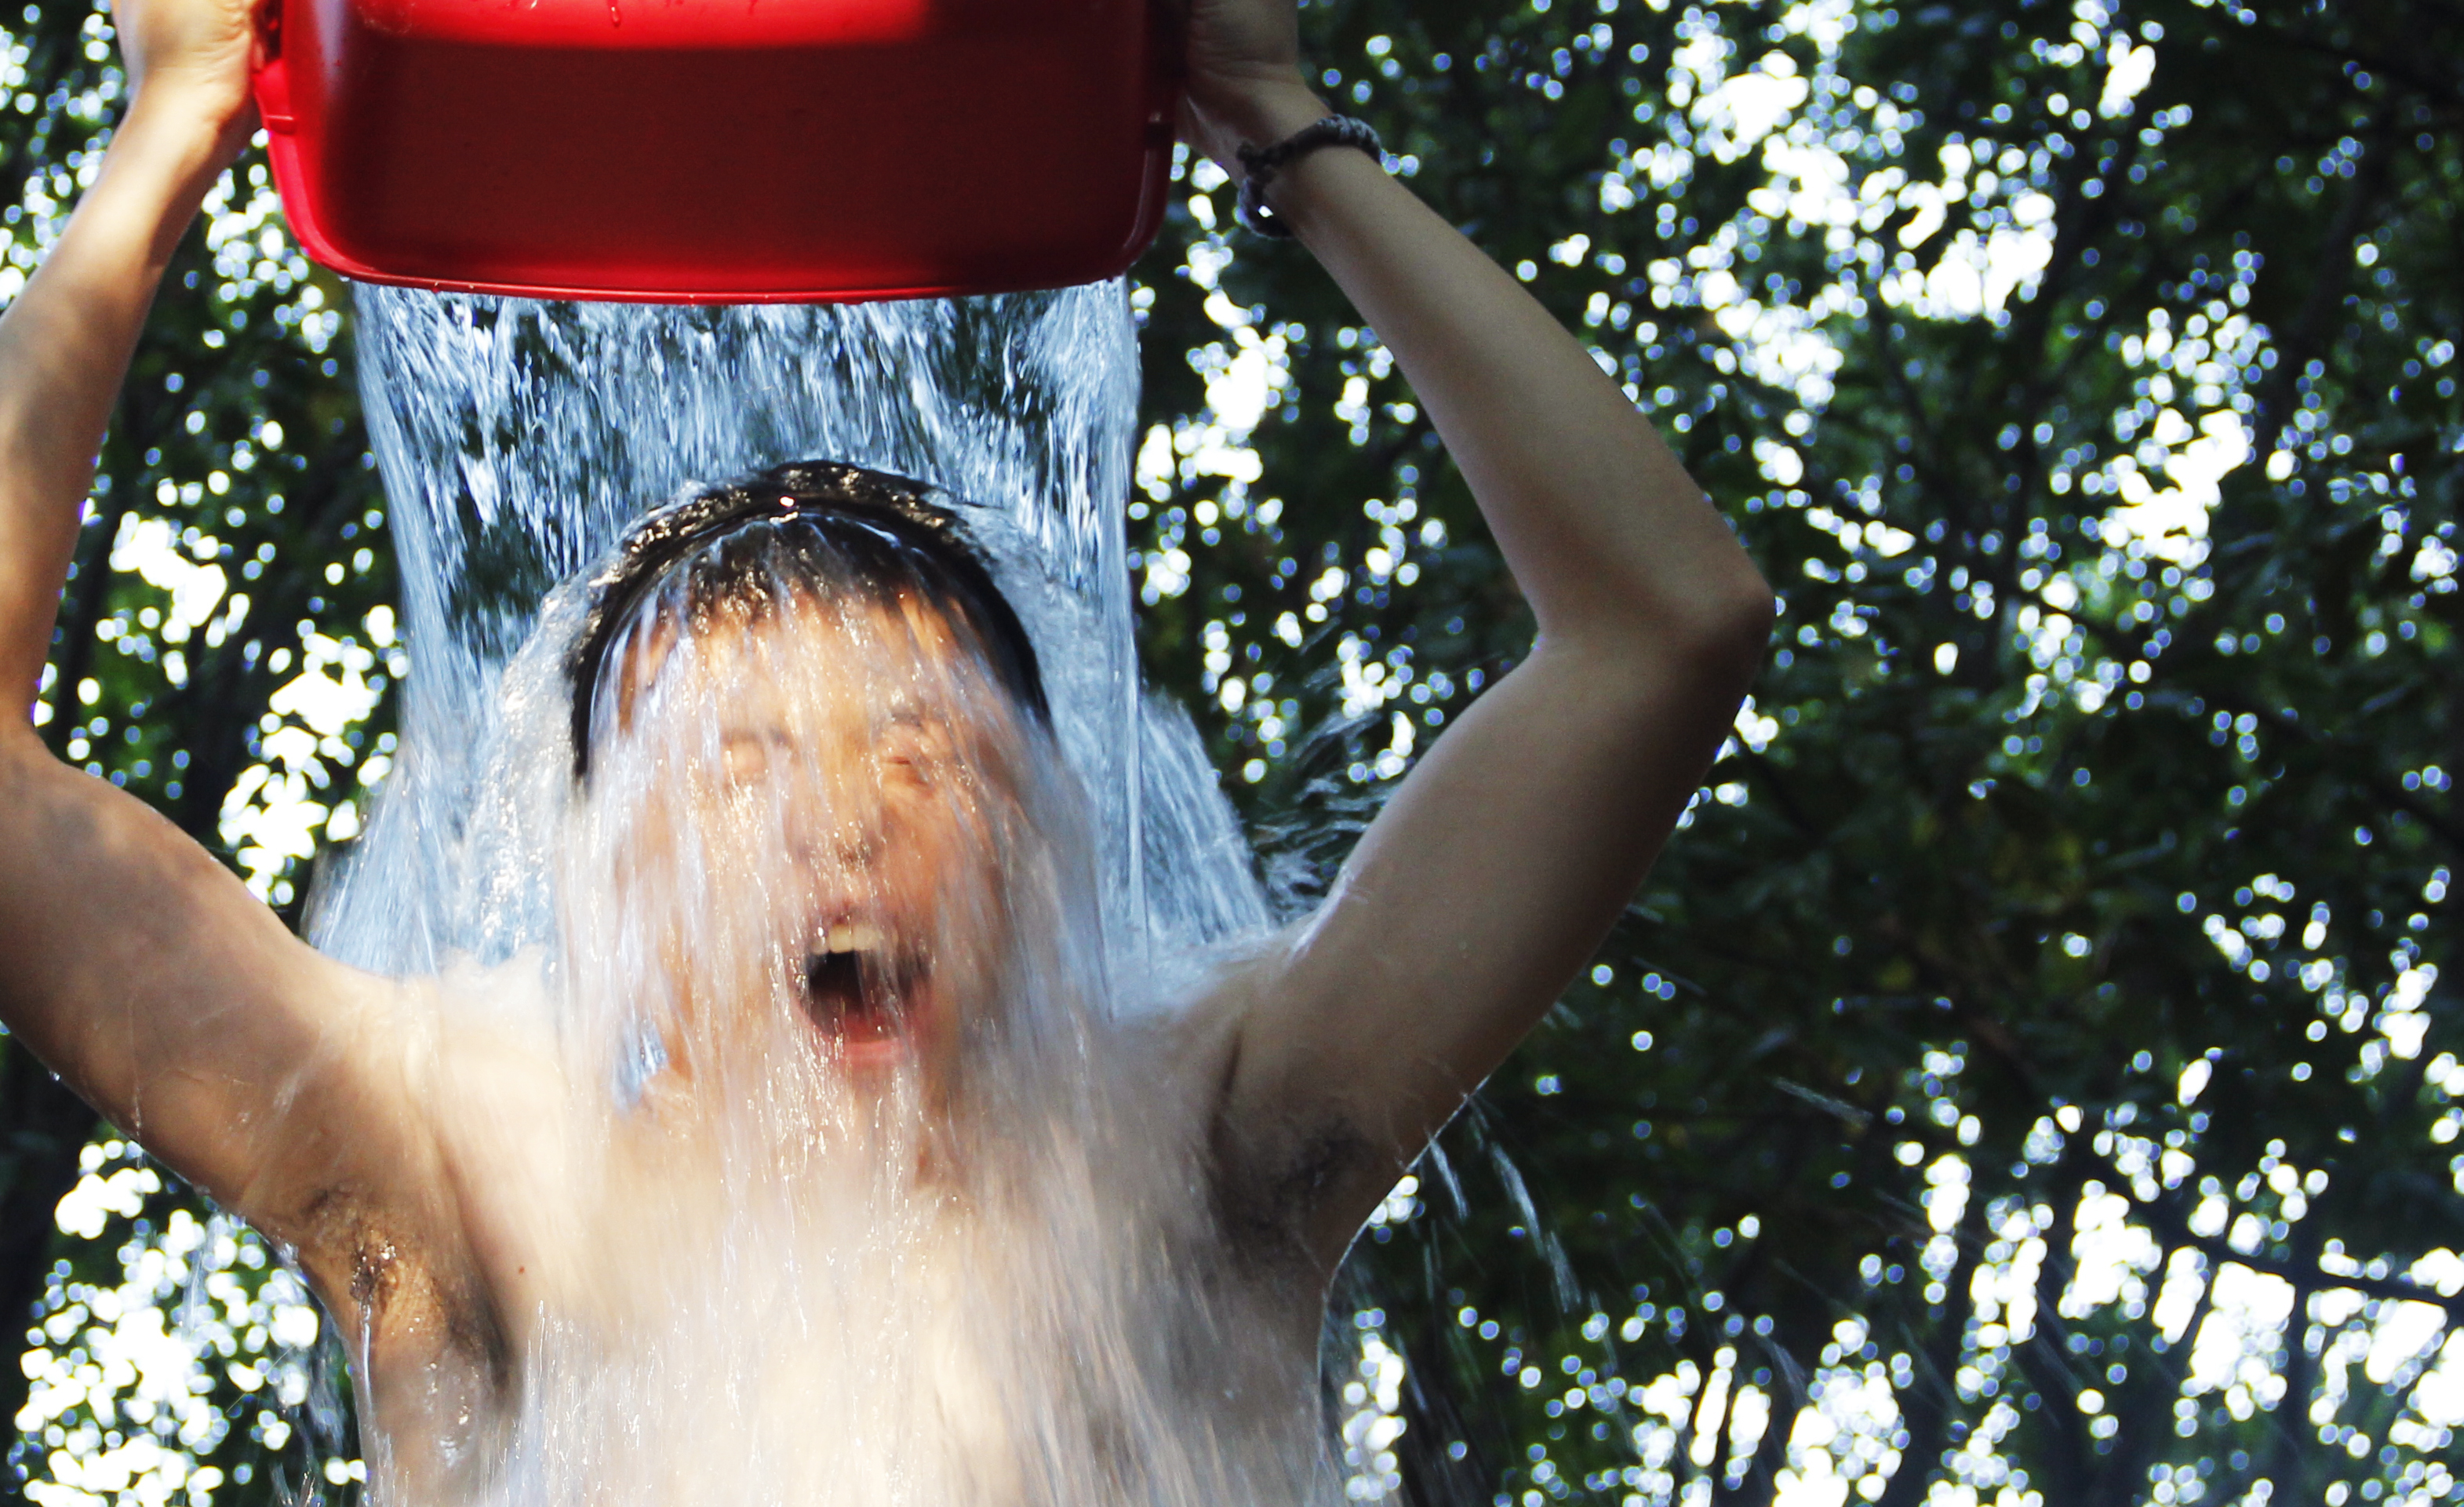 Ice Bucket Challenge back for another round